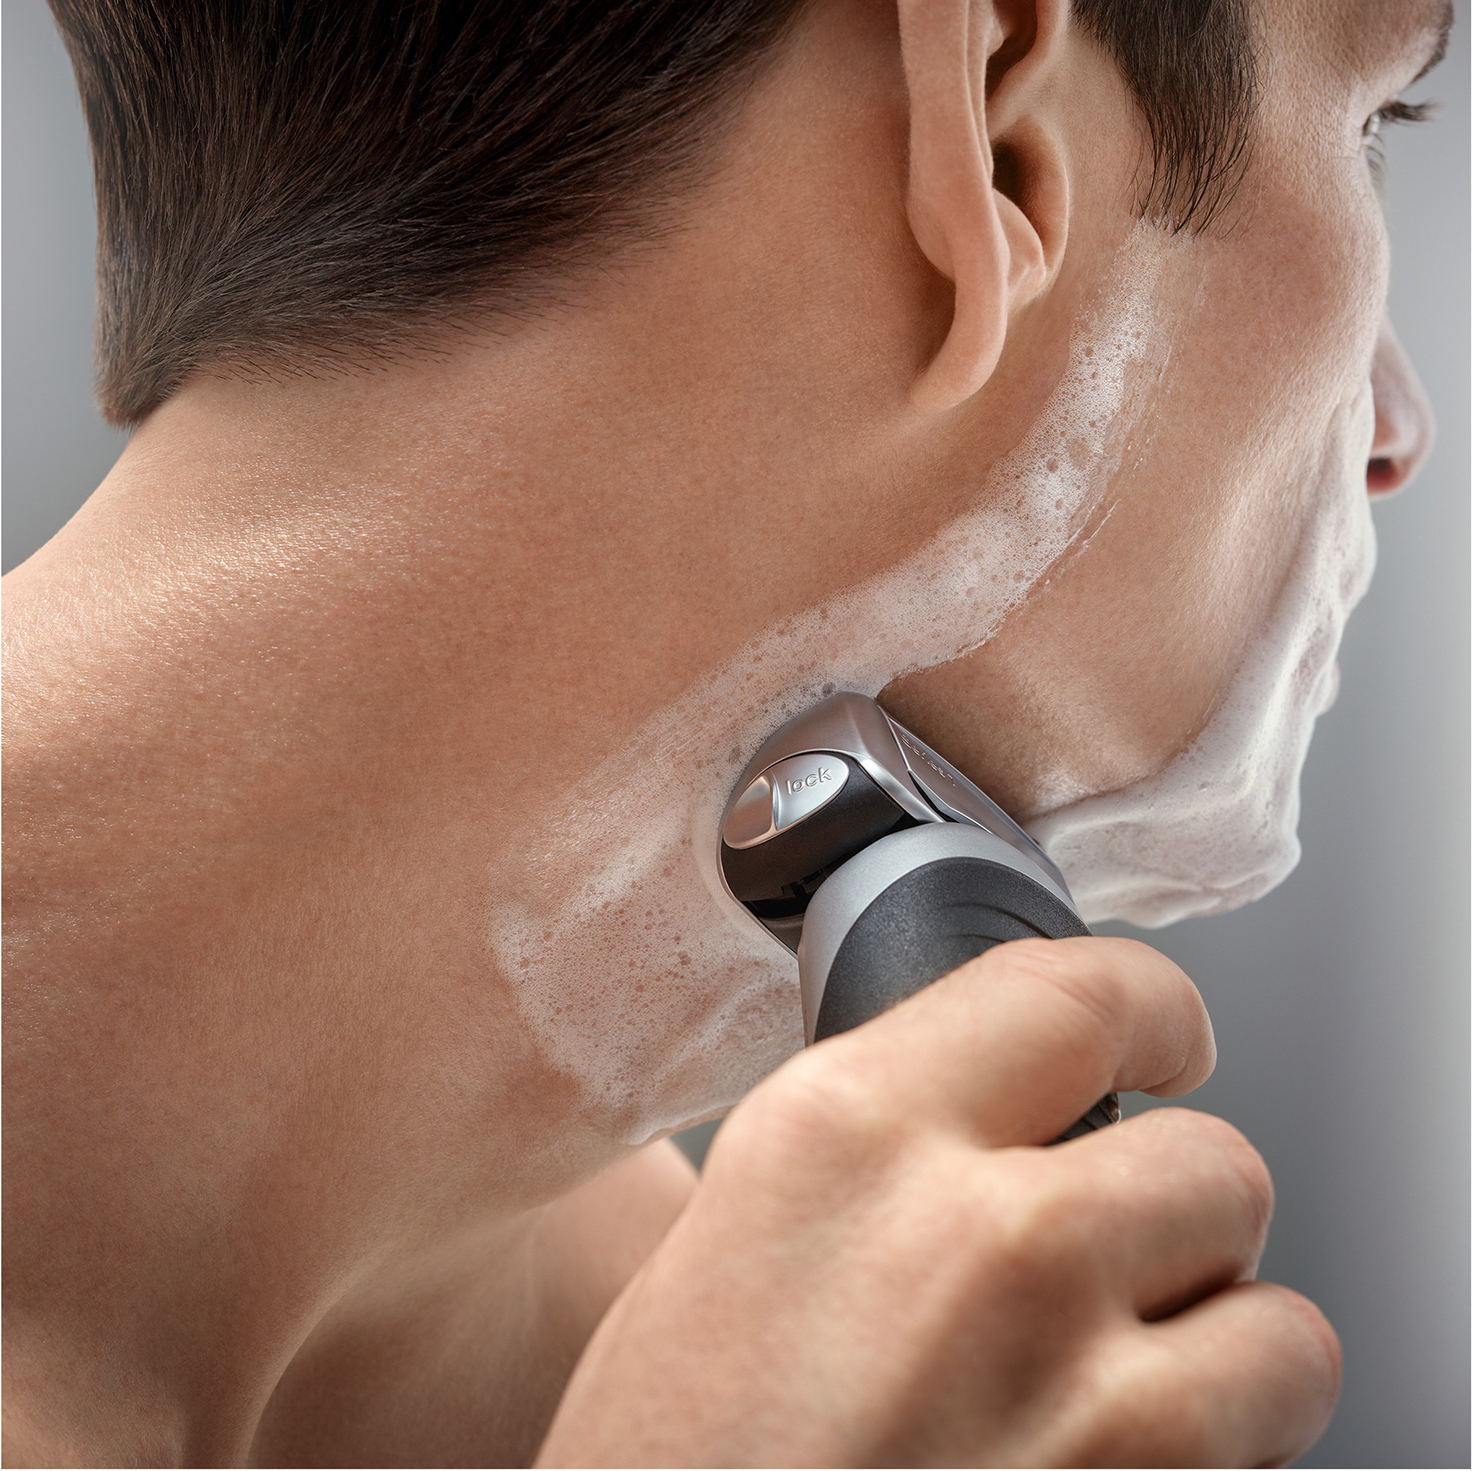 Braun Series 7 silver electric shaver in use